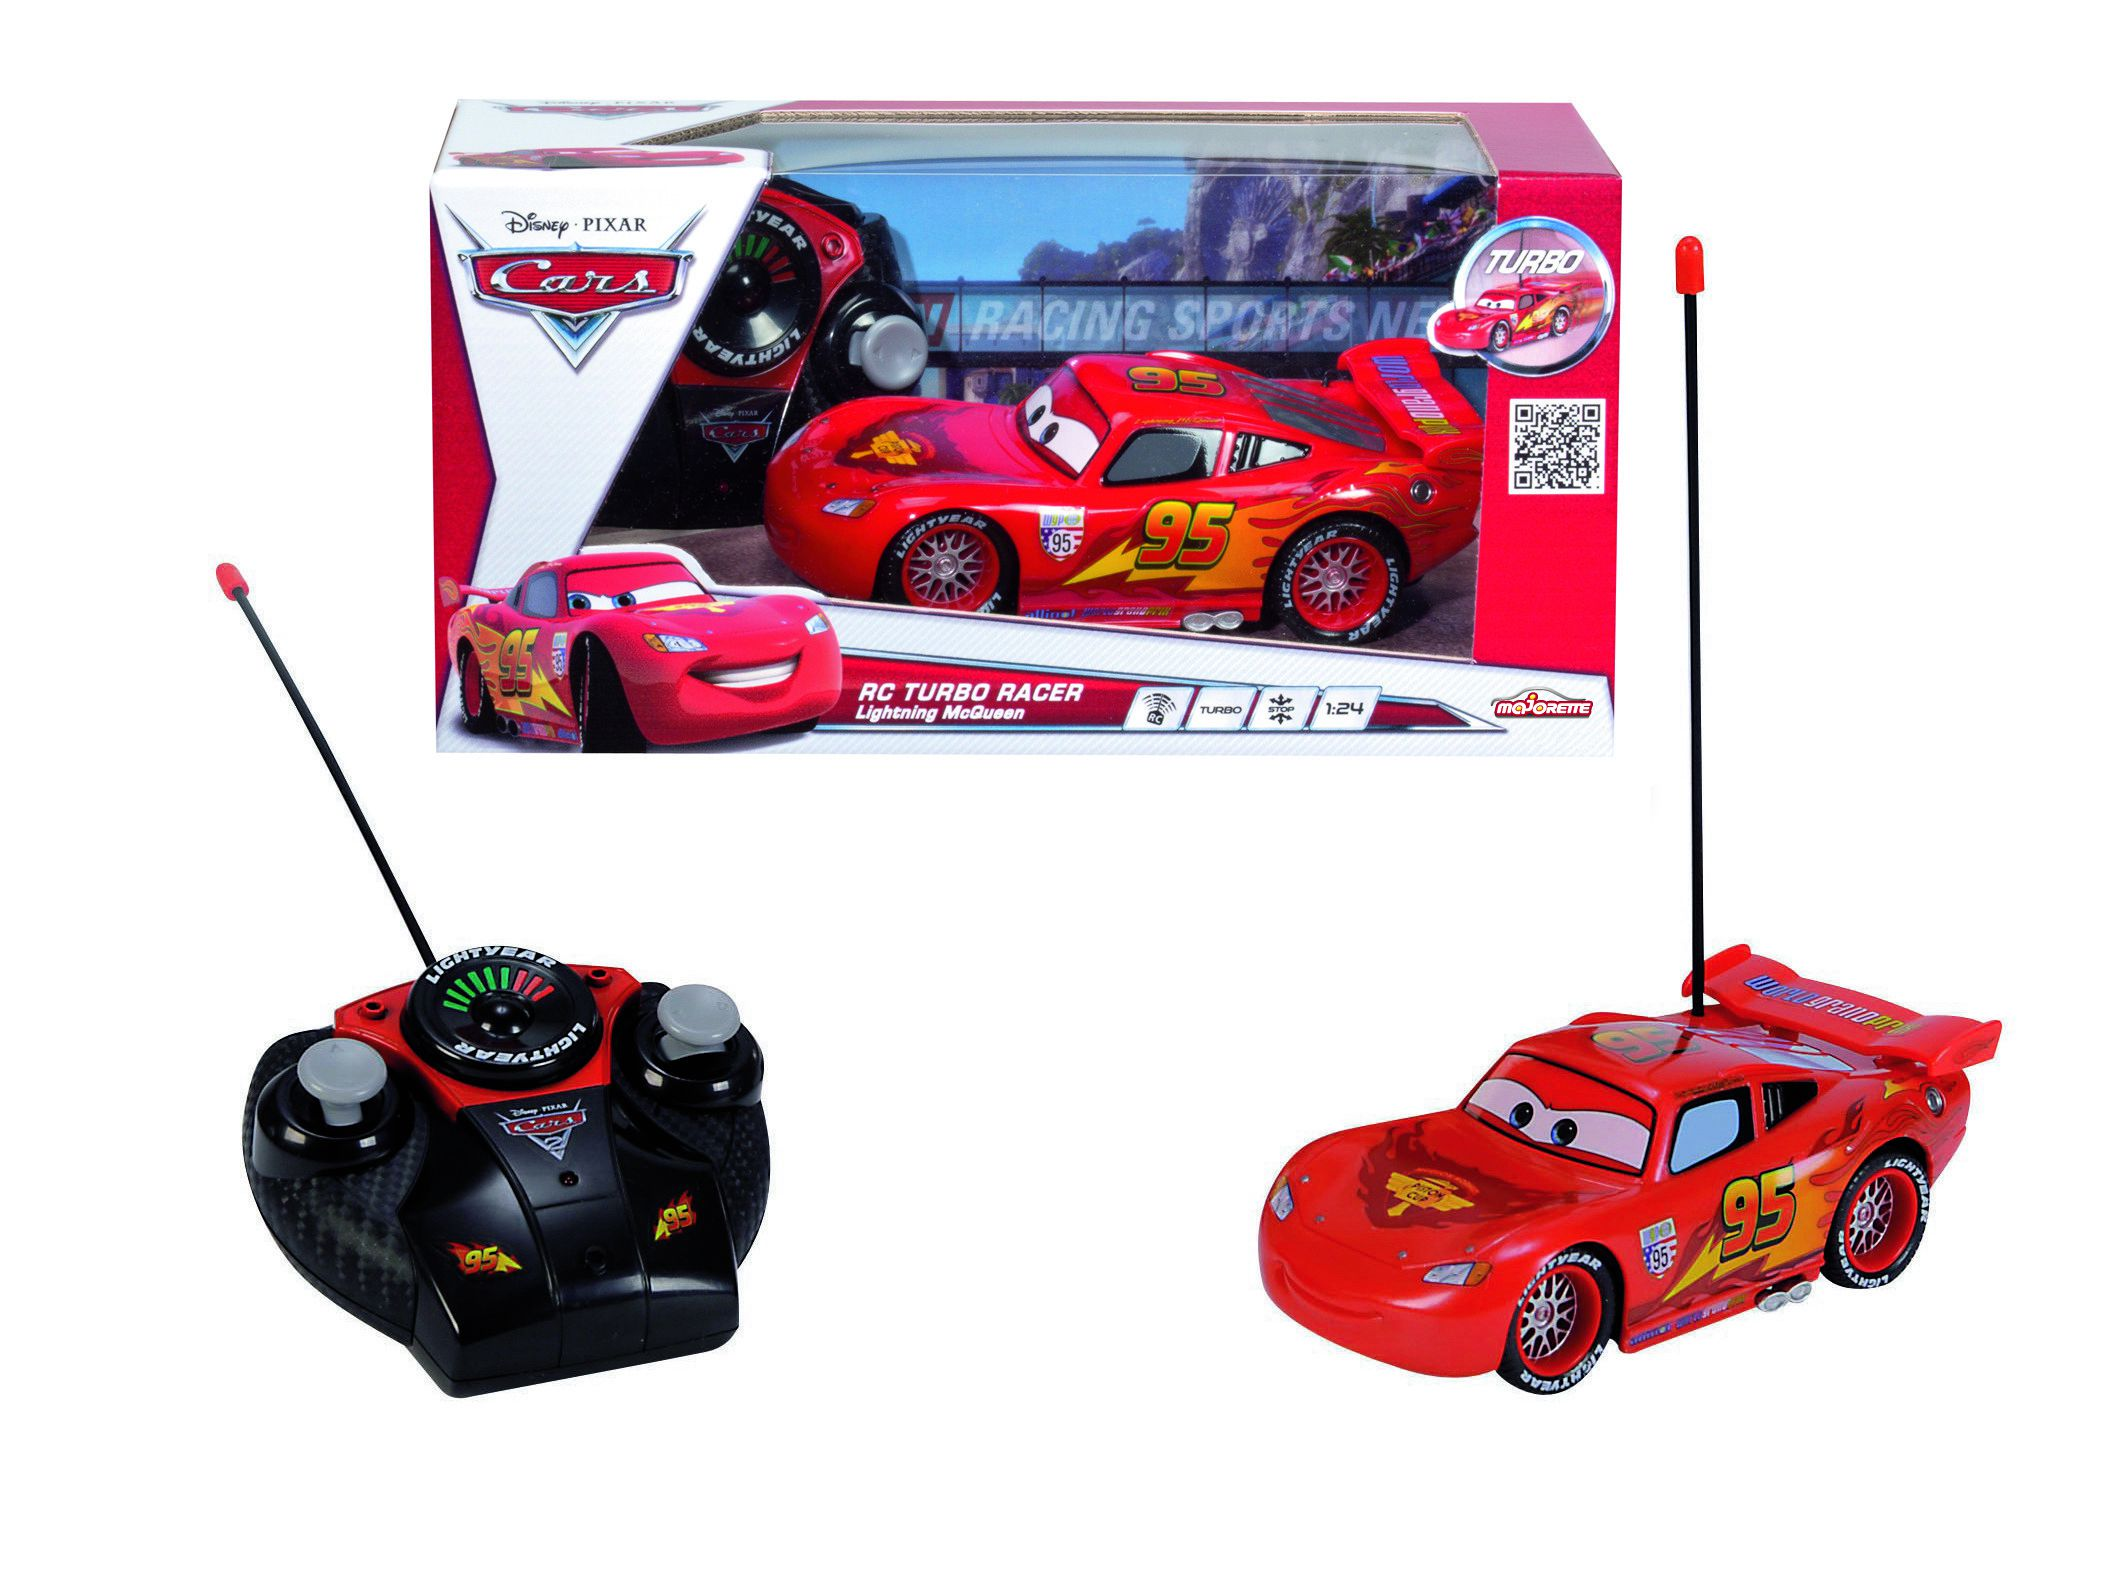 cars buggy with F 1208504 Smo213089501 on Swiss Made Umbausatze Fur Brudermodelle further Index also 73780 Kart Cross as well United States Pontiac Stinger further T123p15 Meyers Manx Buggy.